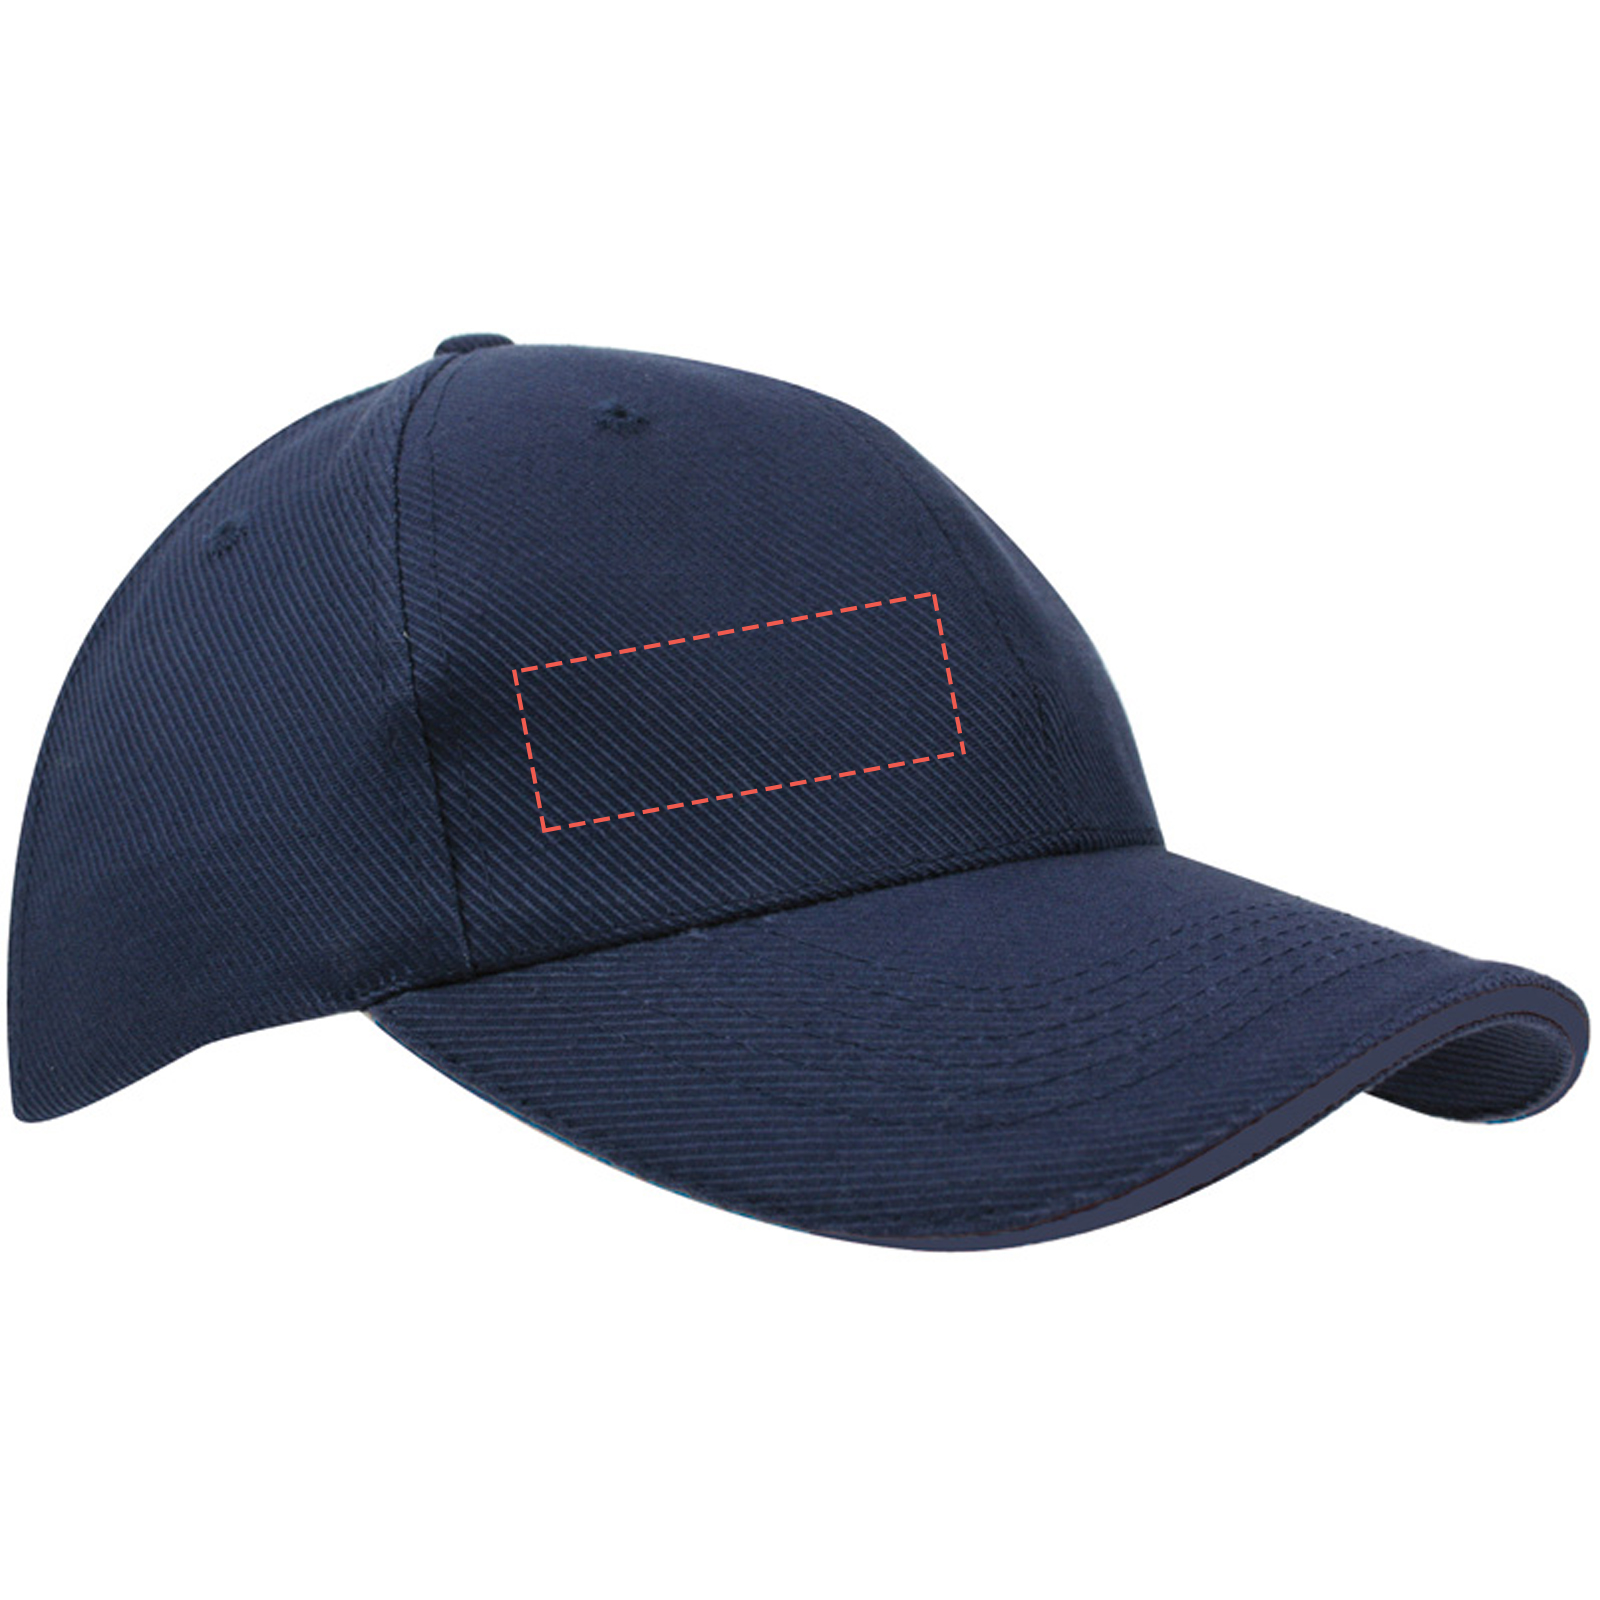 Canvas Sandwich Cap - Bedrukking